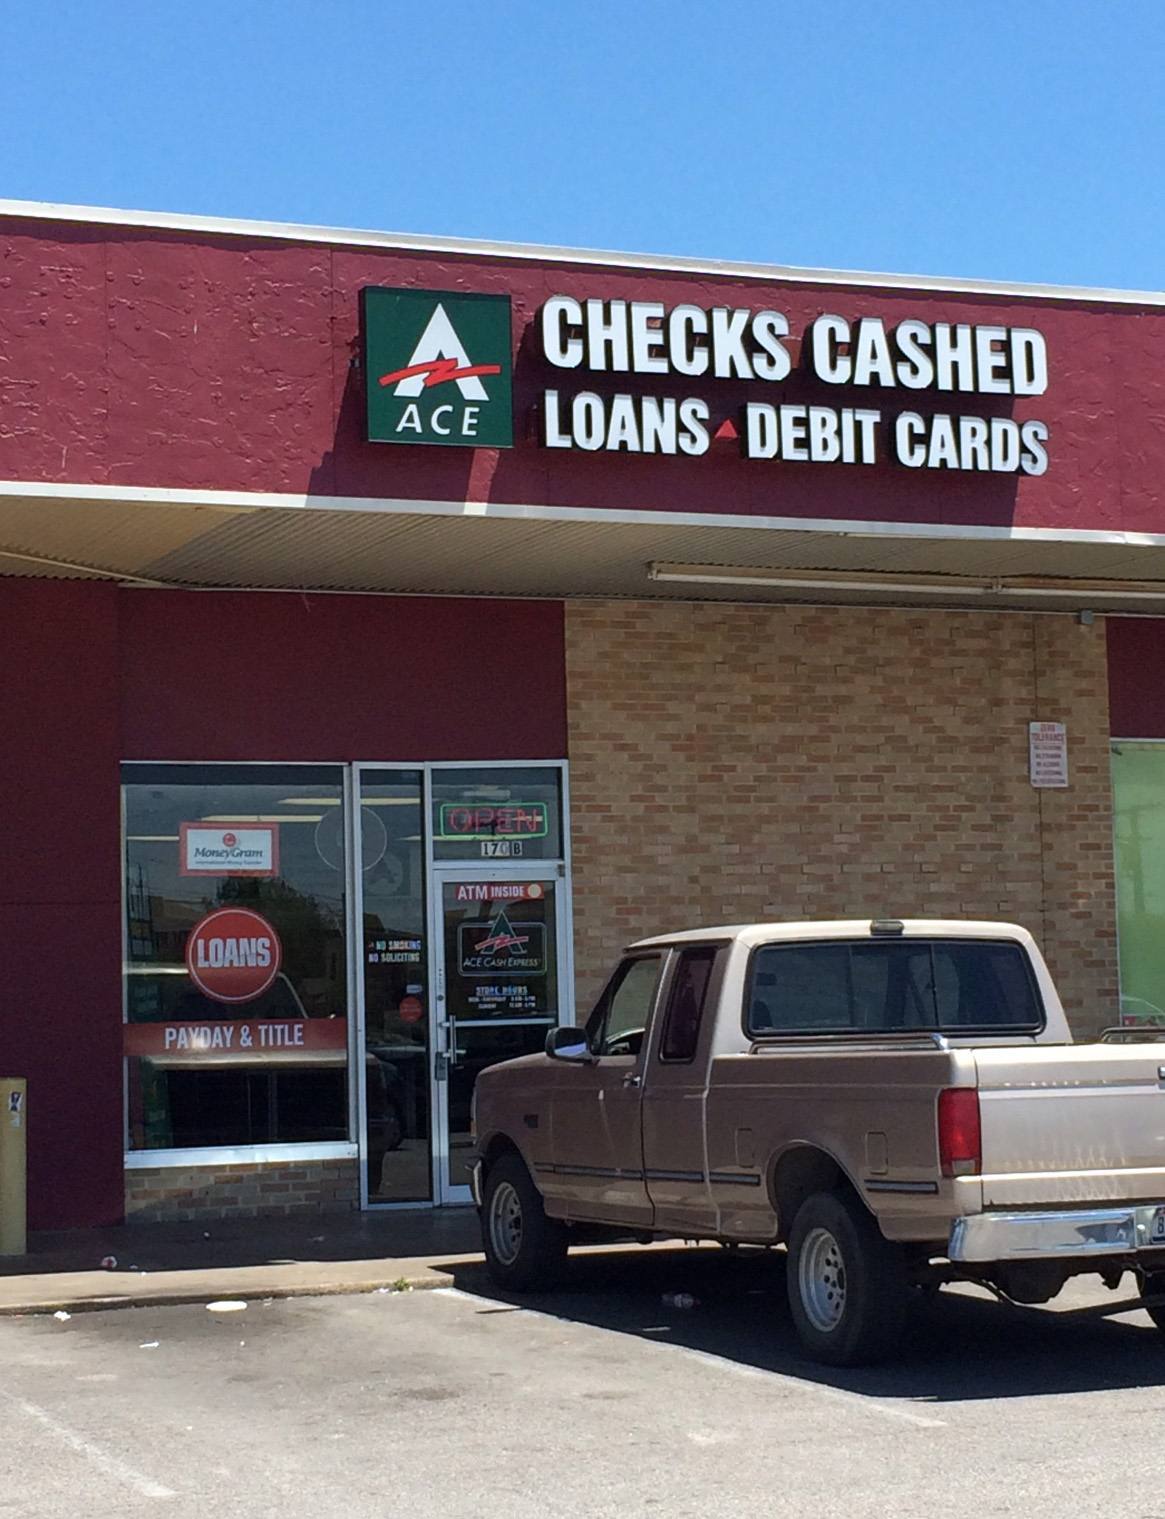 Payday loans denison texas image 4